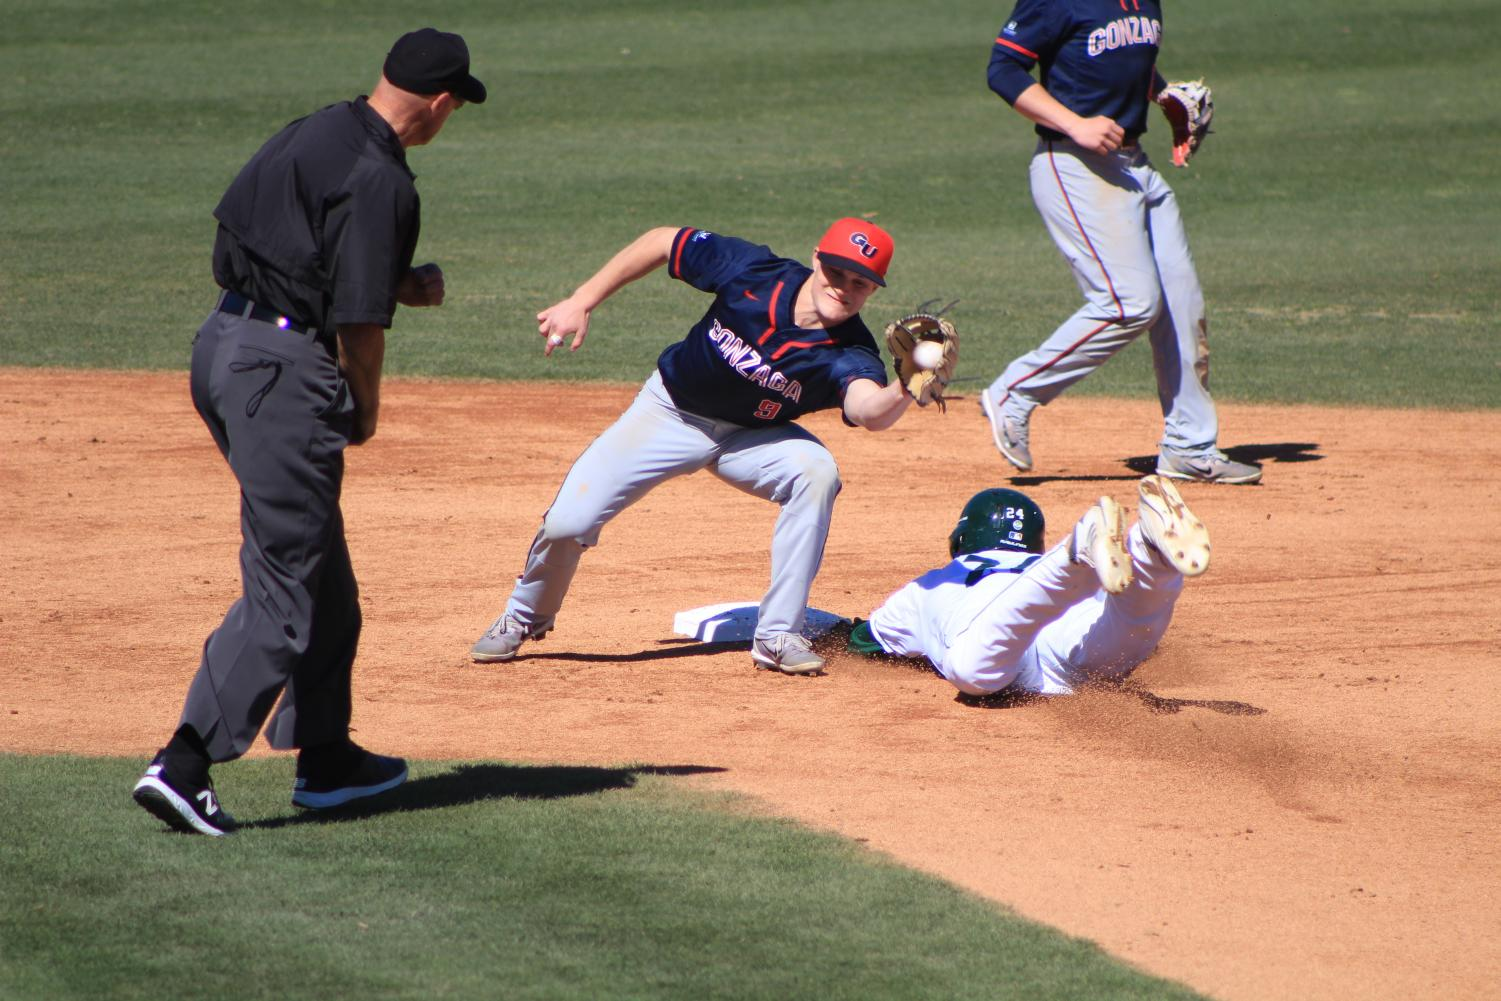 Sacramento State junior outfielder Matt Smith slides into second base safely against Gonzaga University at John Smith Field on Monday, March 5. The Hornets lost to the Bulldogs 6-3.